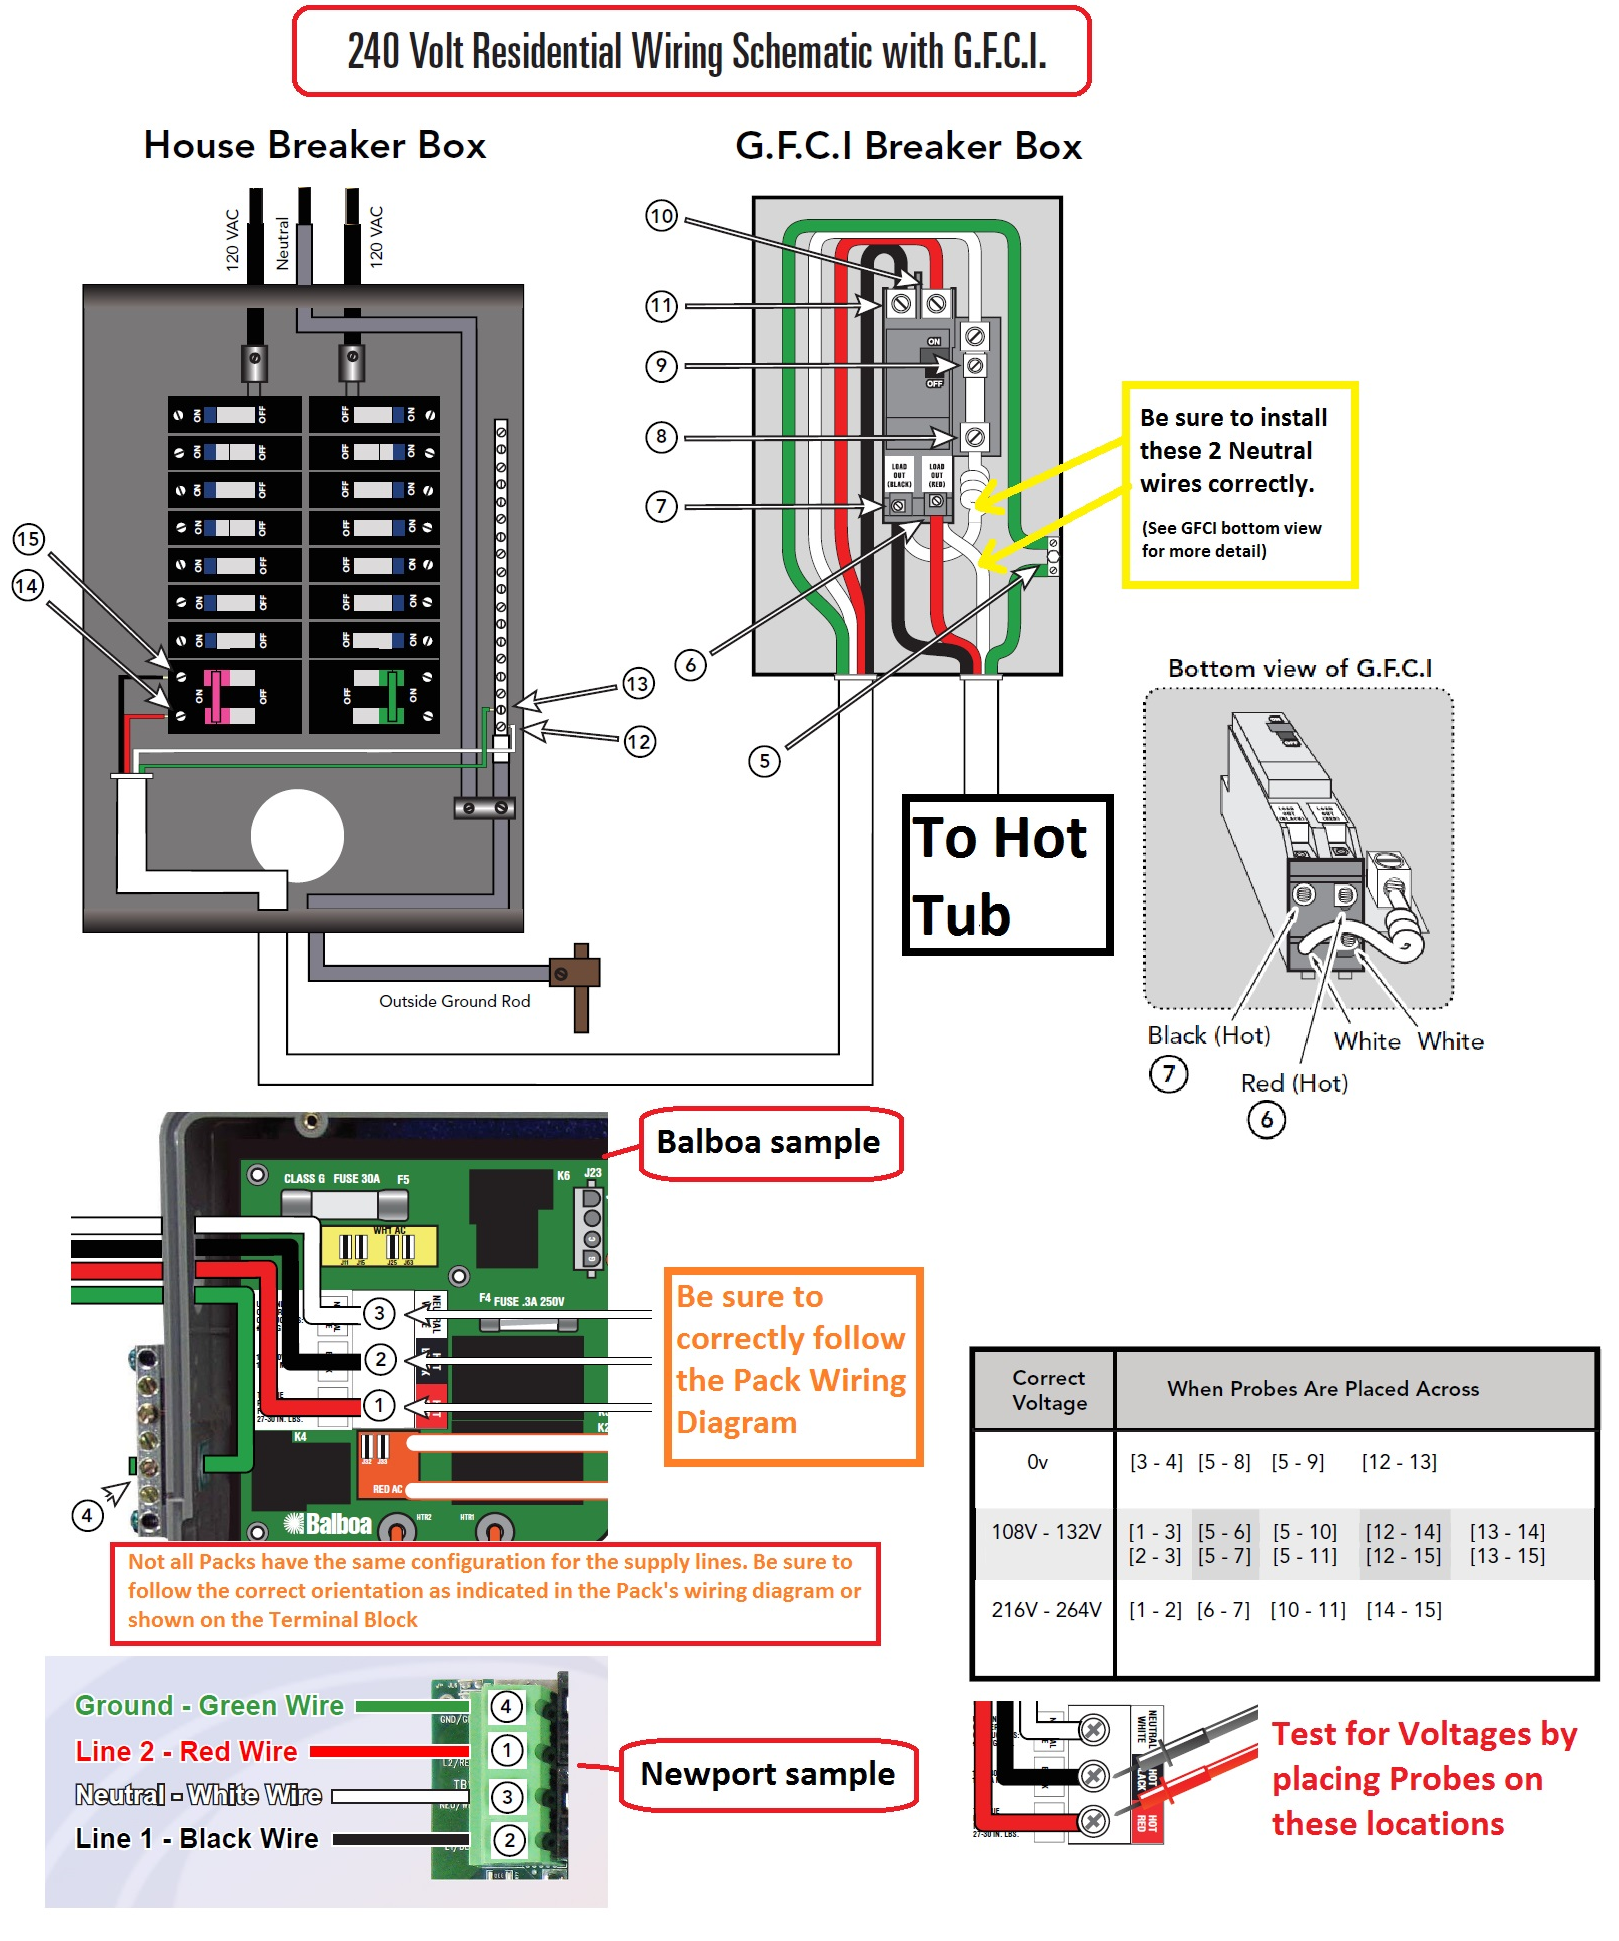 Residential Wiring Diagram 240v Services Home Image Result For Outlet Electrical Pinterest Rh Com 240 Diagrams Receptacle